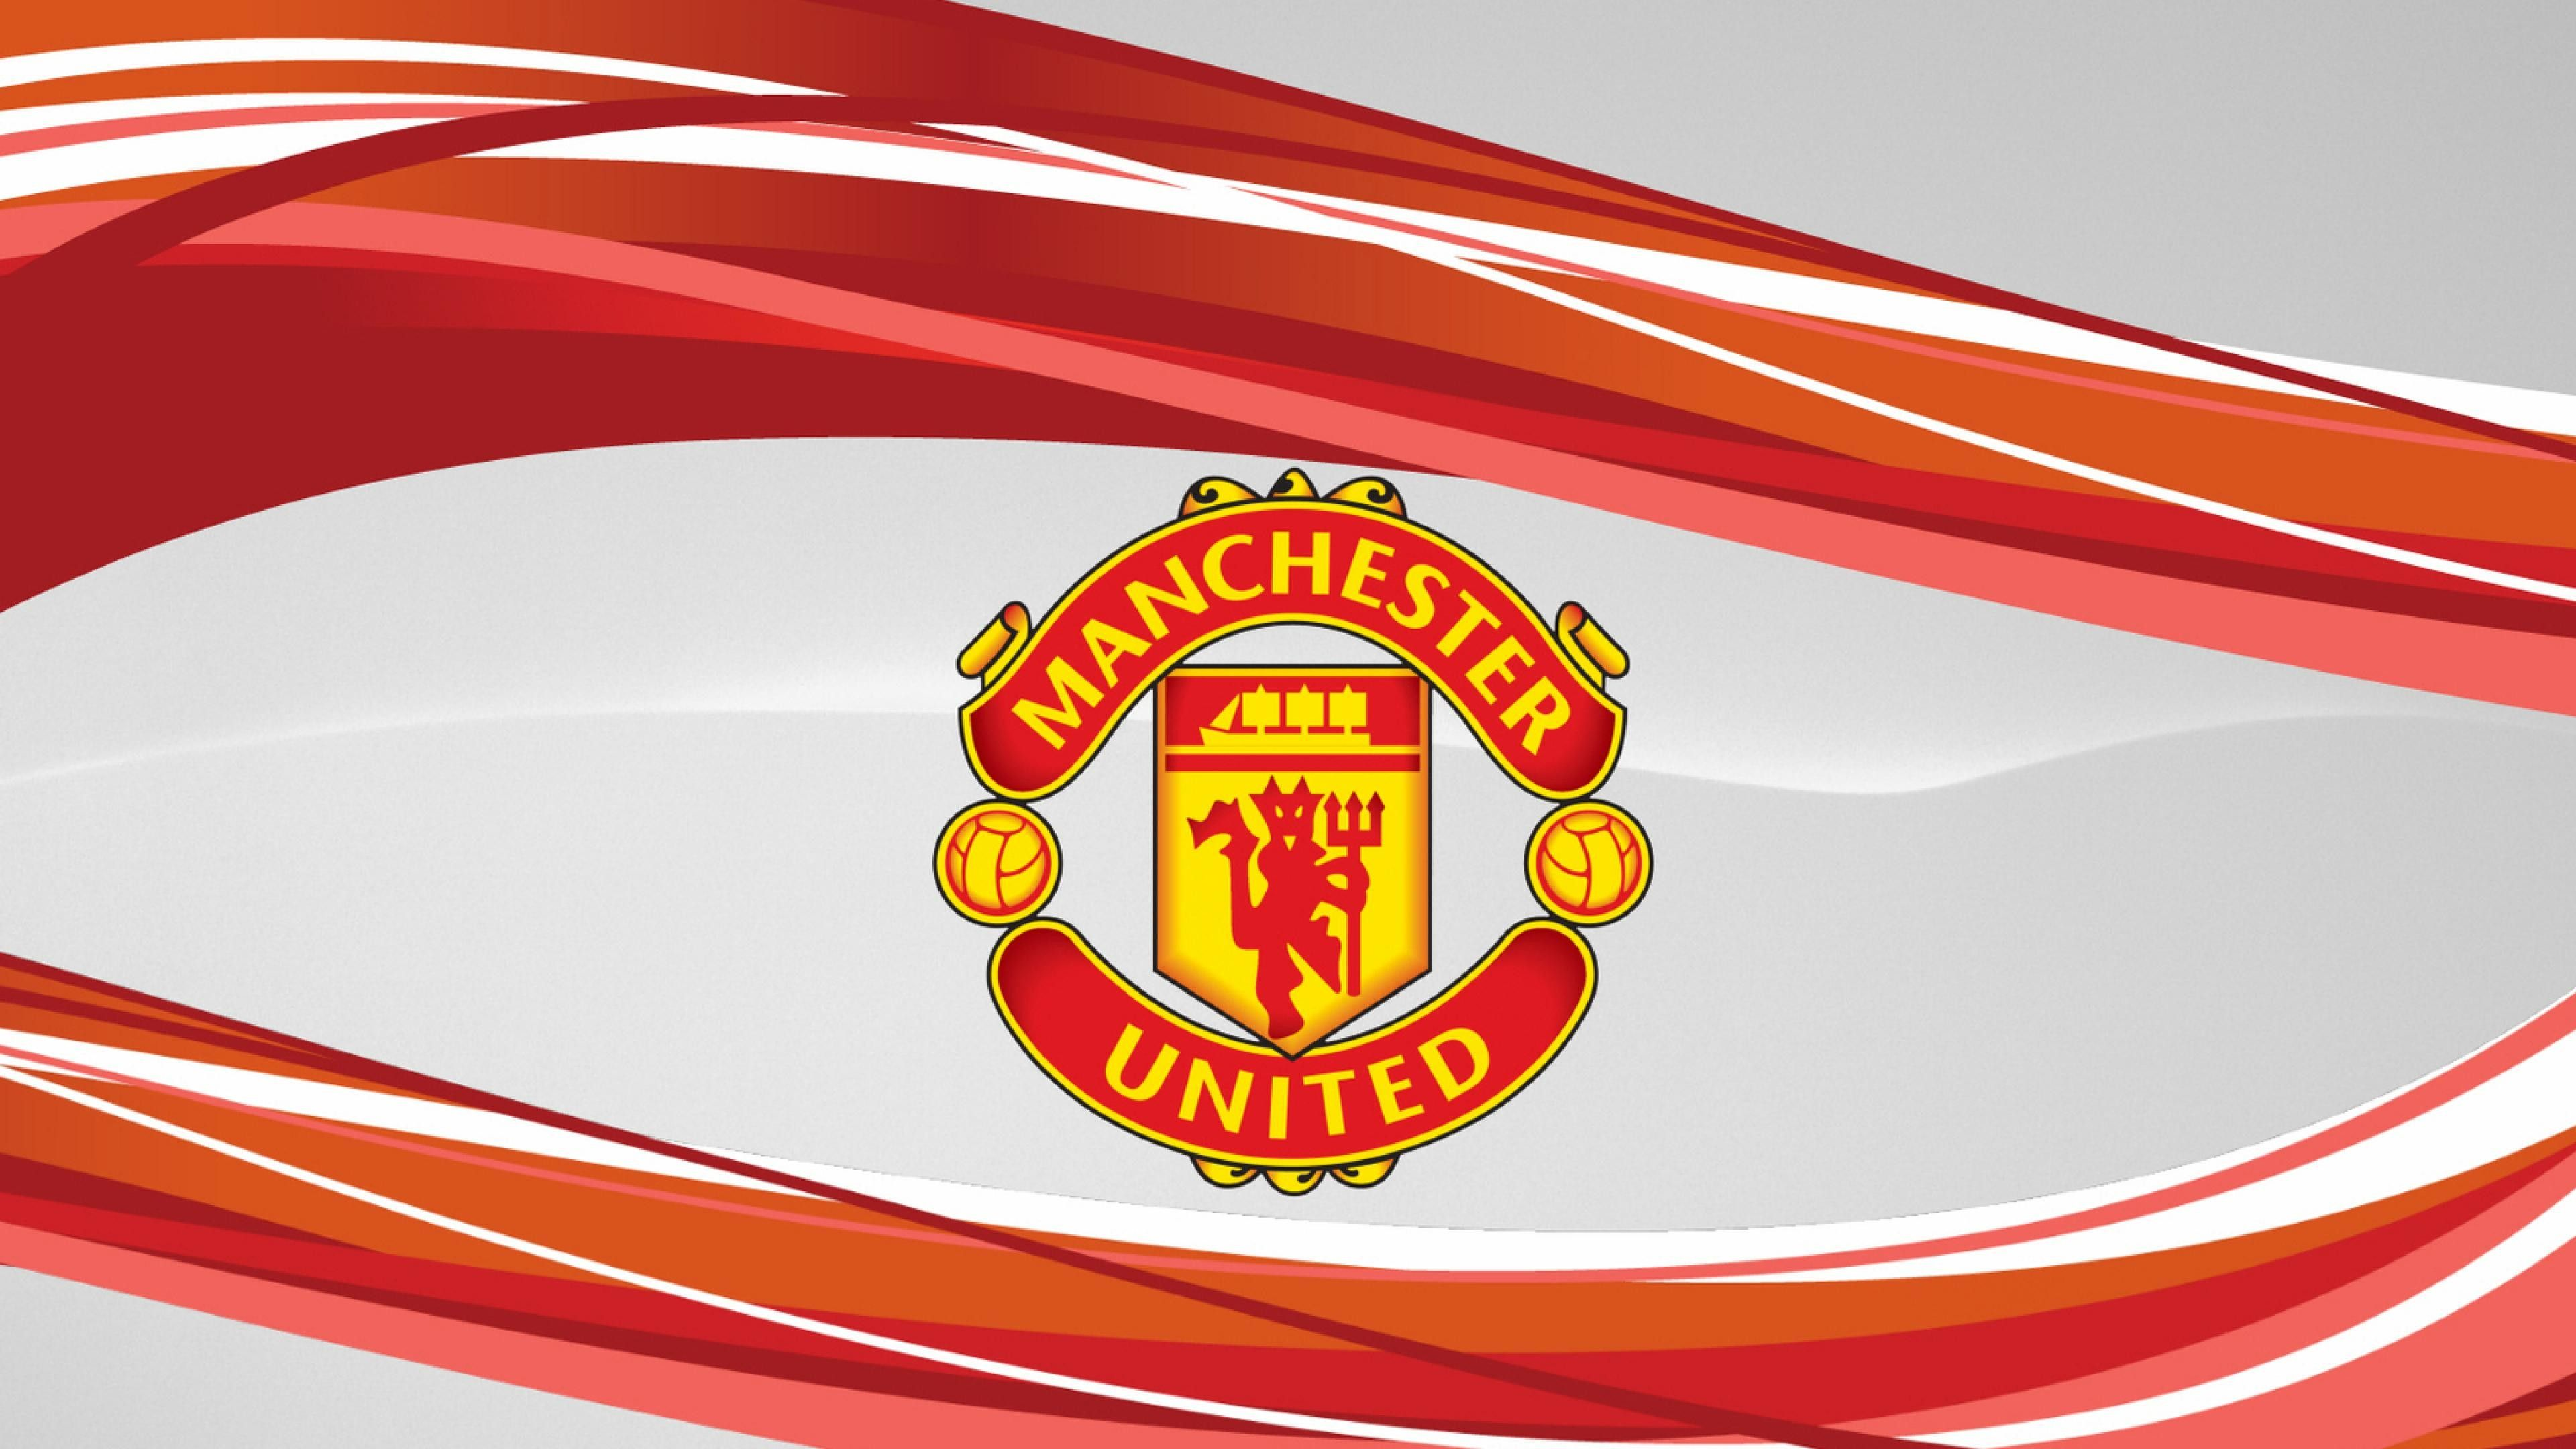 Get Awesome Manchester United Wallpapers Hd Wallpaper 3840x2160 Manchester United 4K Wallpapers, Download Free HD Wallpapers